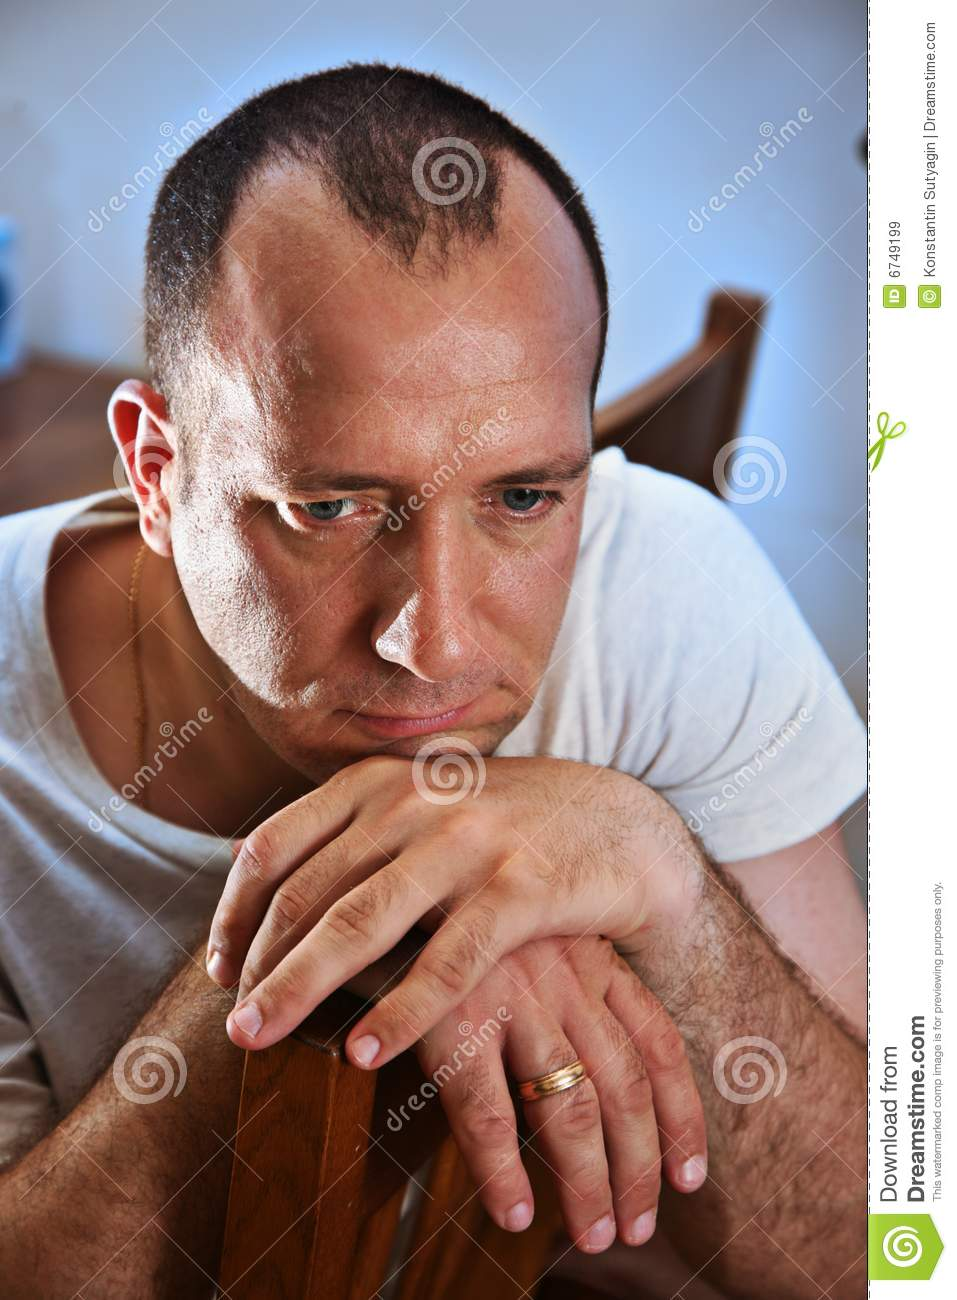 Sad Man Thinking Royalty Free Stock Images - Image: 6749199